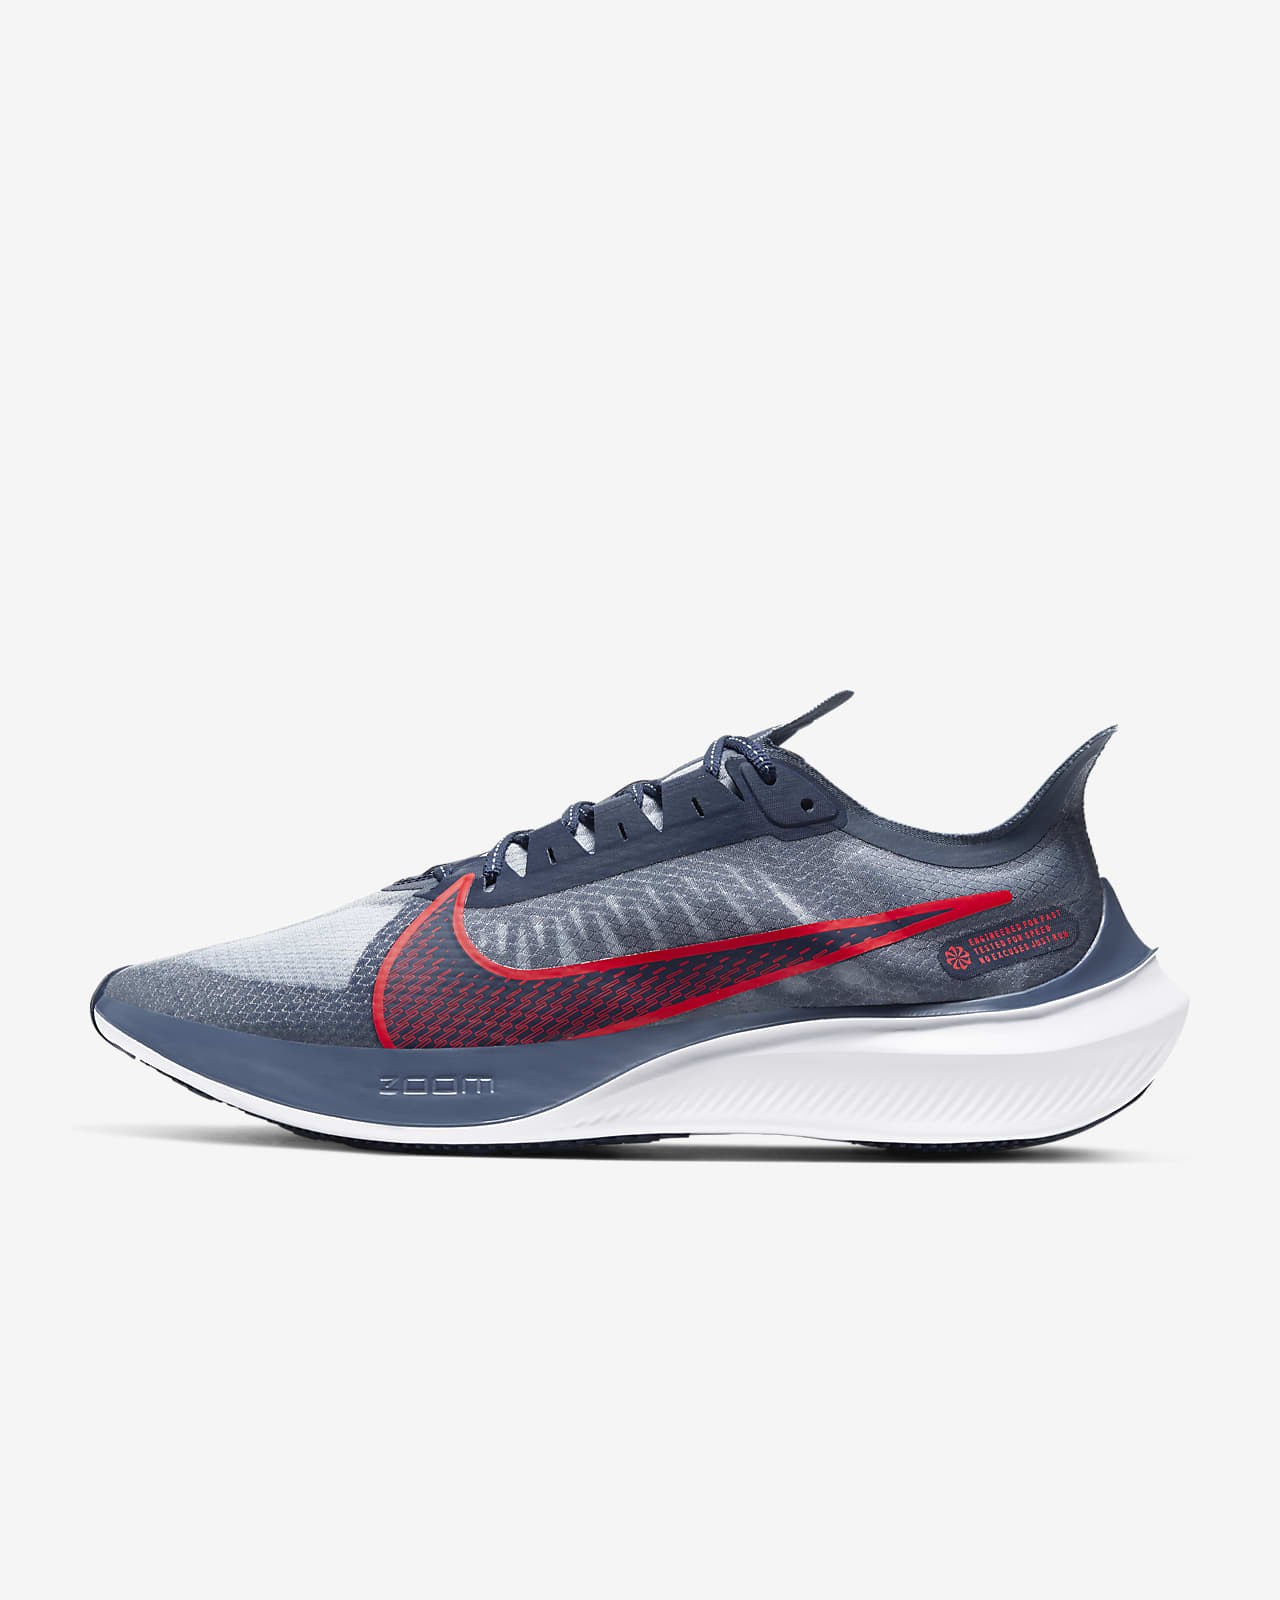 Chaussure de running Nike Zoom Gravity pour Homme